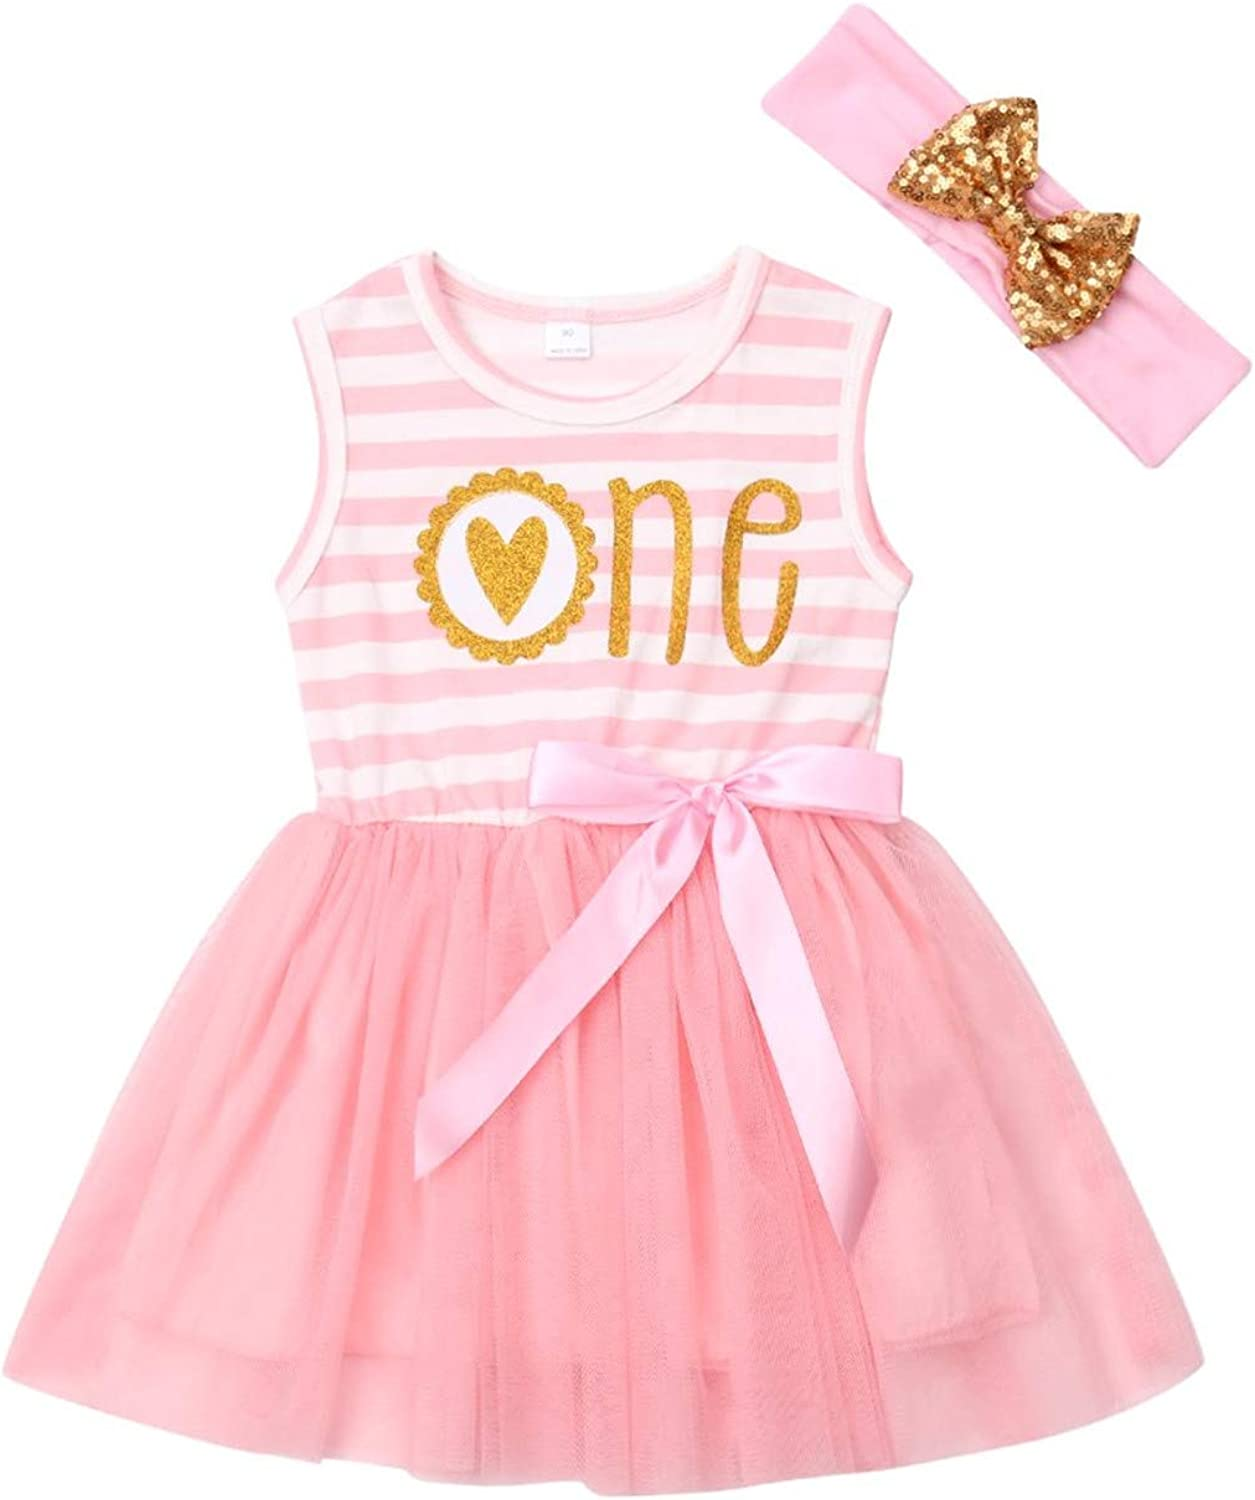 Birthday dress tunic girls pink white striped with number